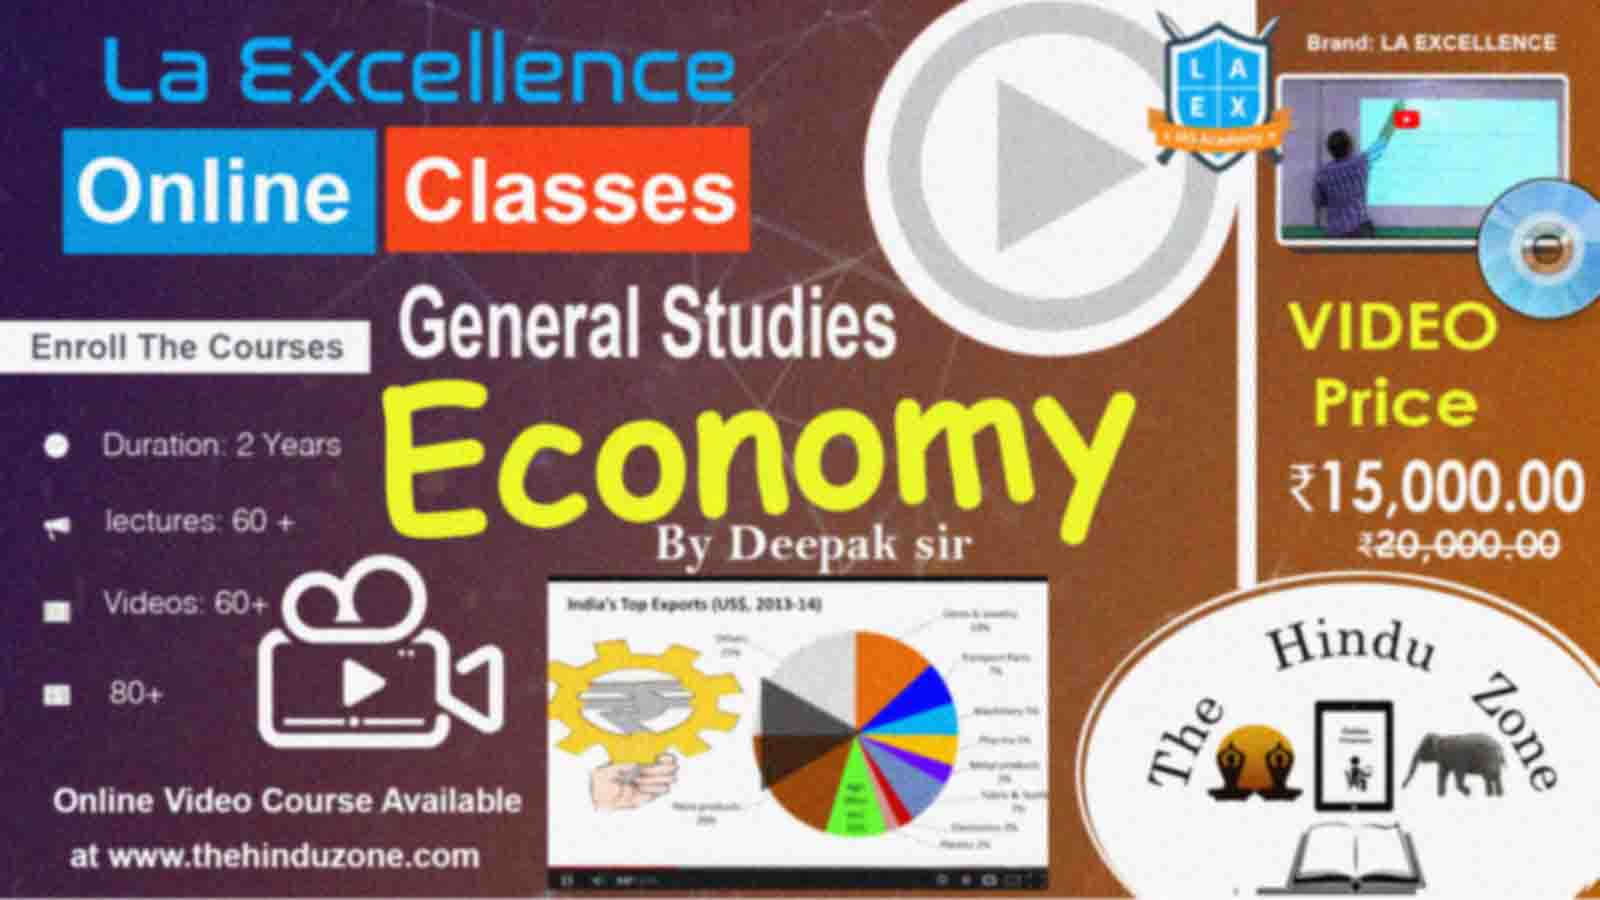 Video Lectures of General Studies Economy for UPSC by Deepak sir